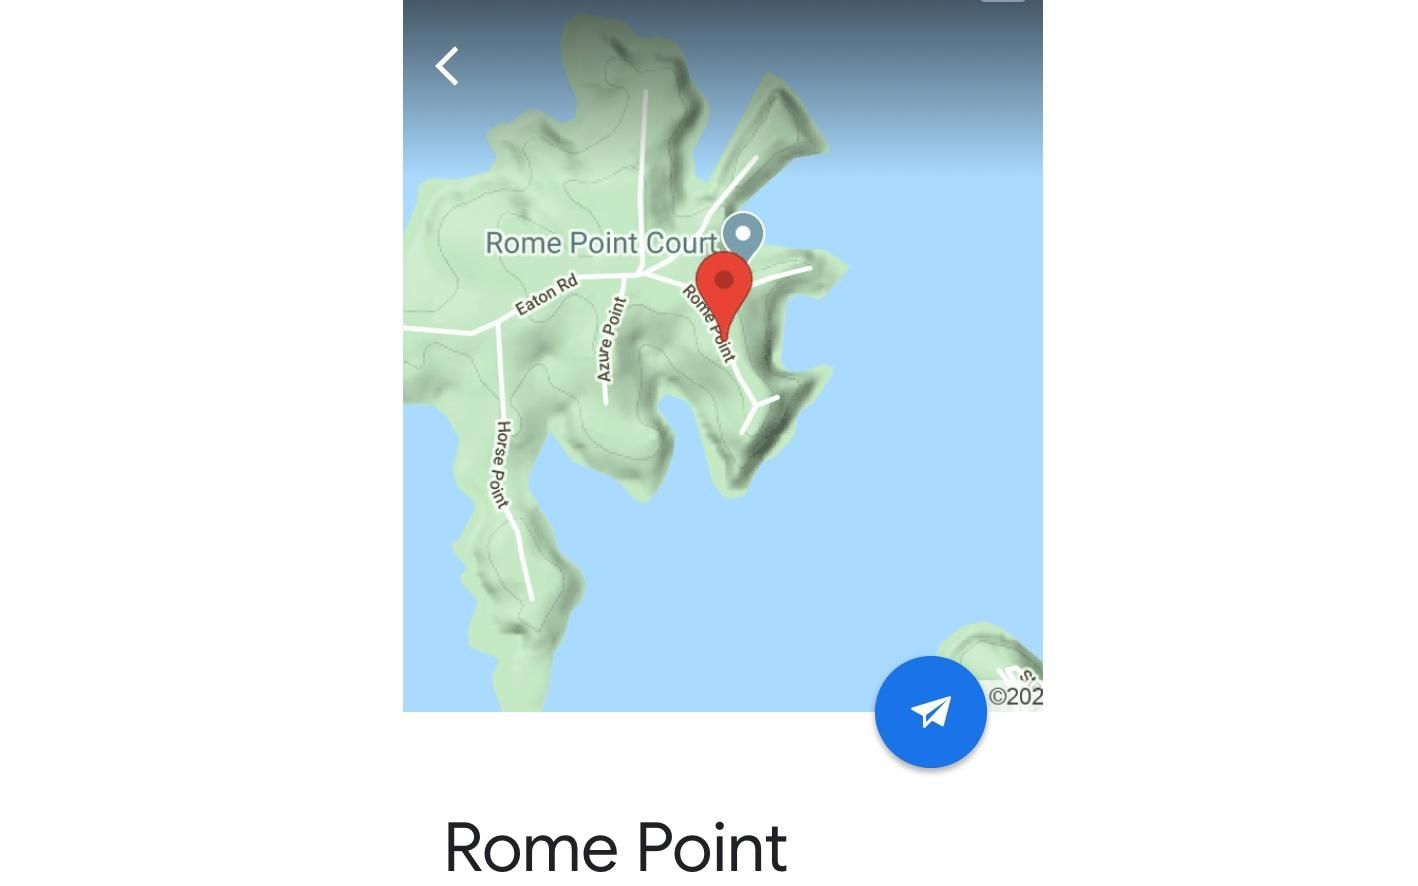 Rome Point